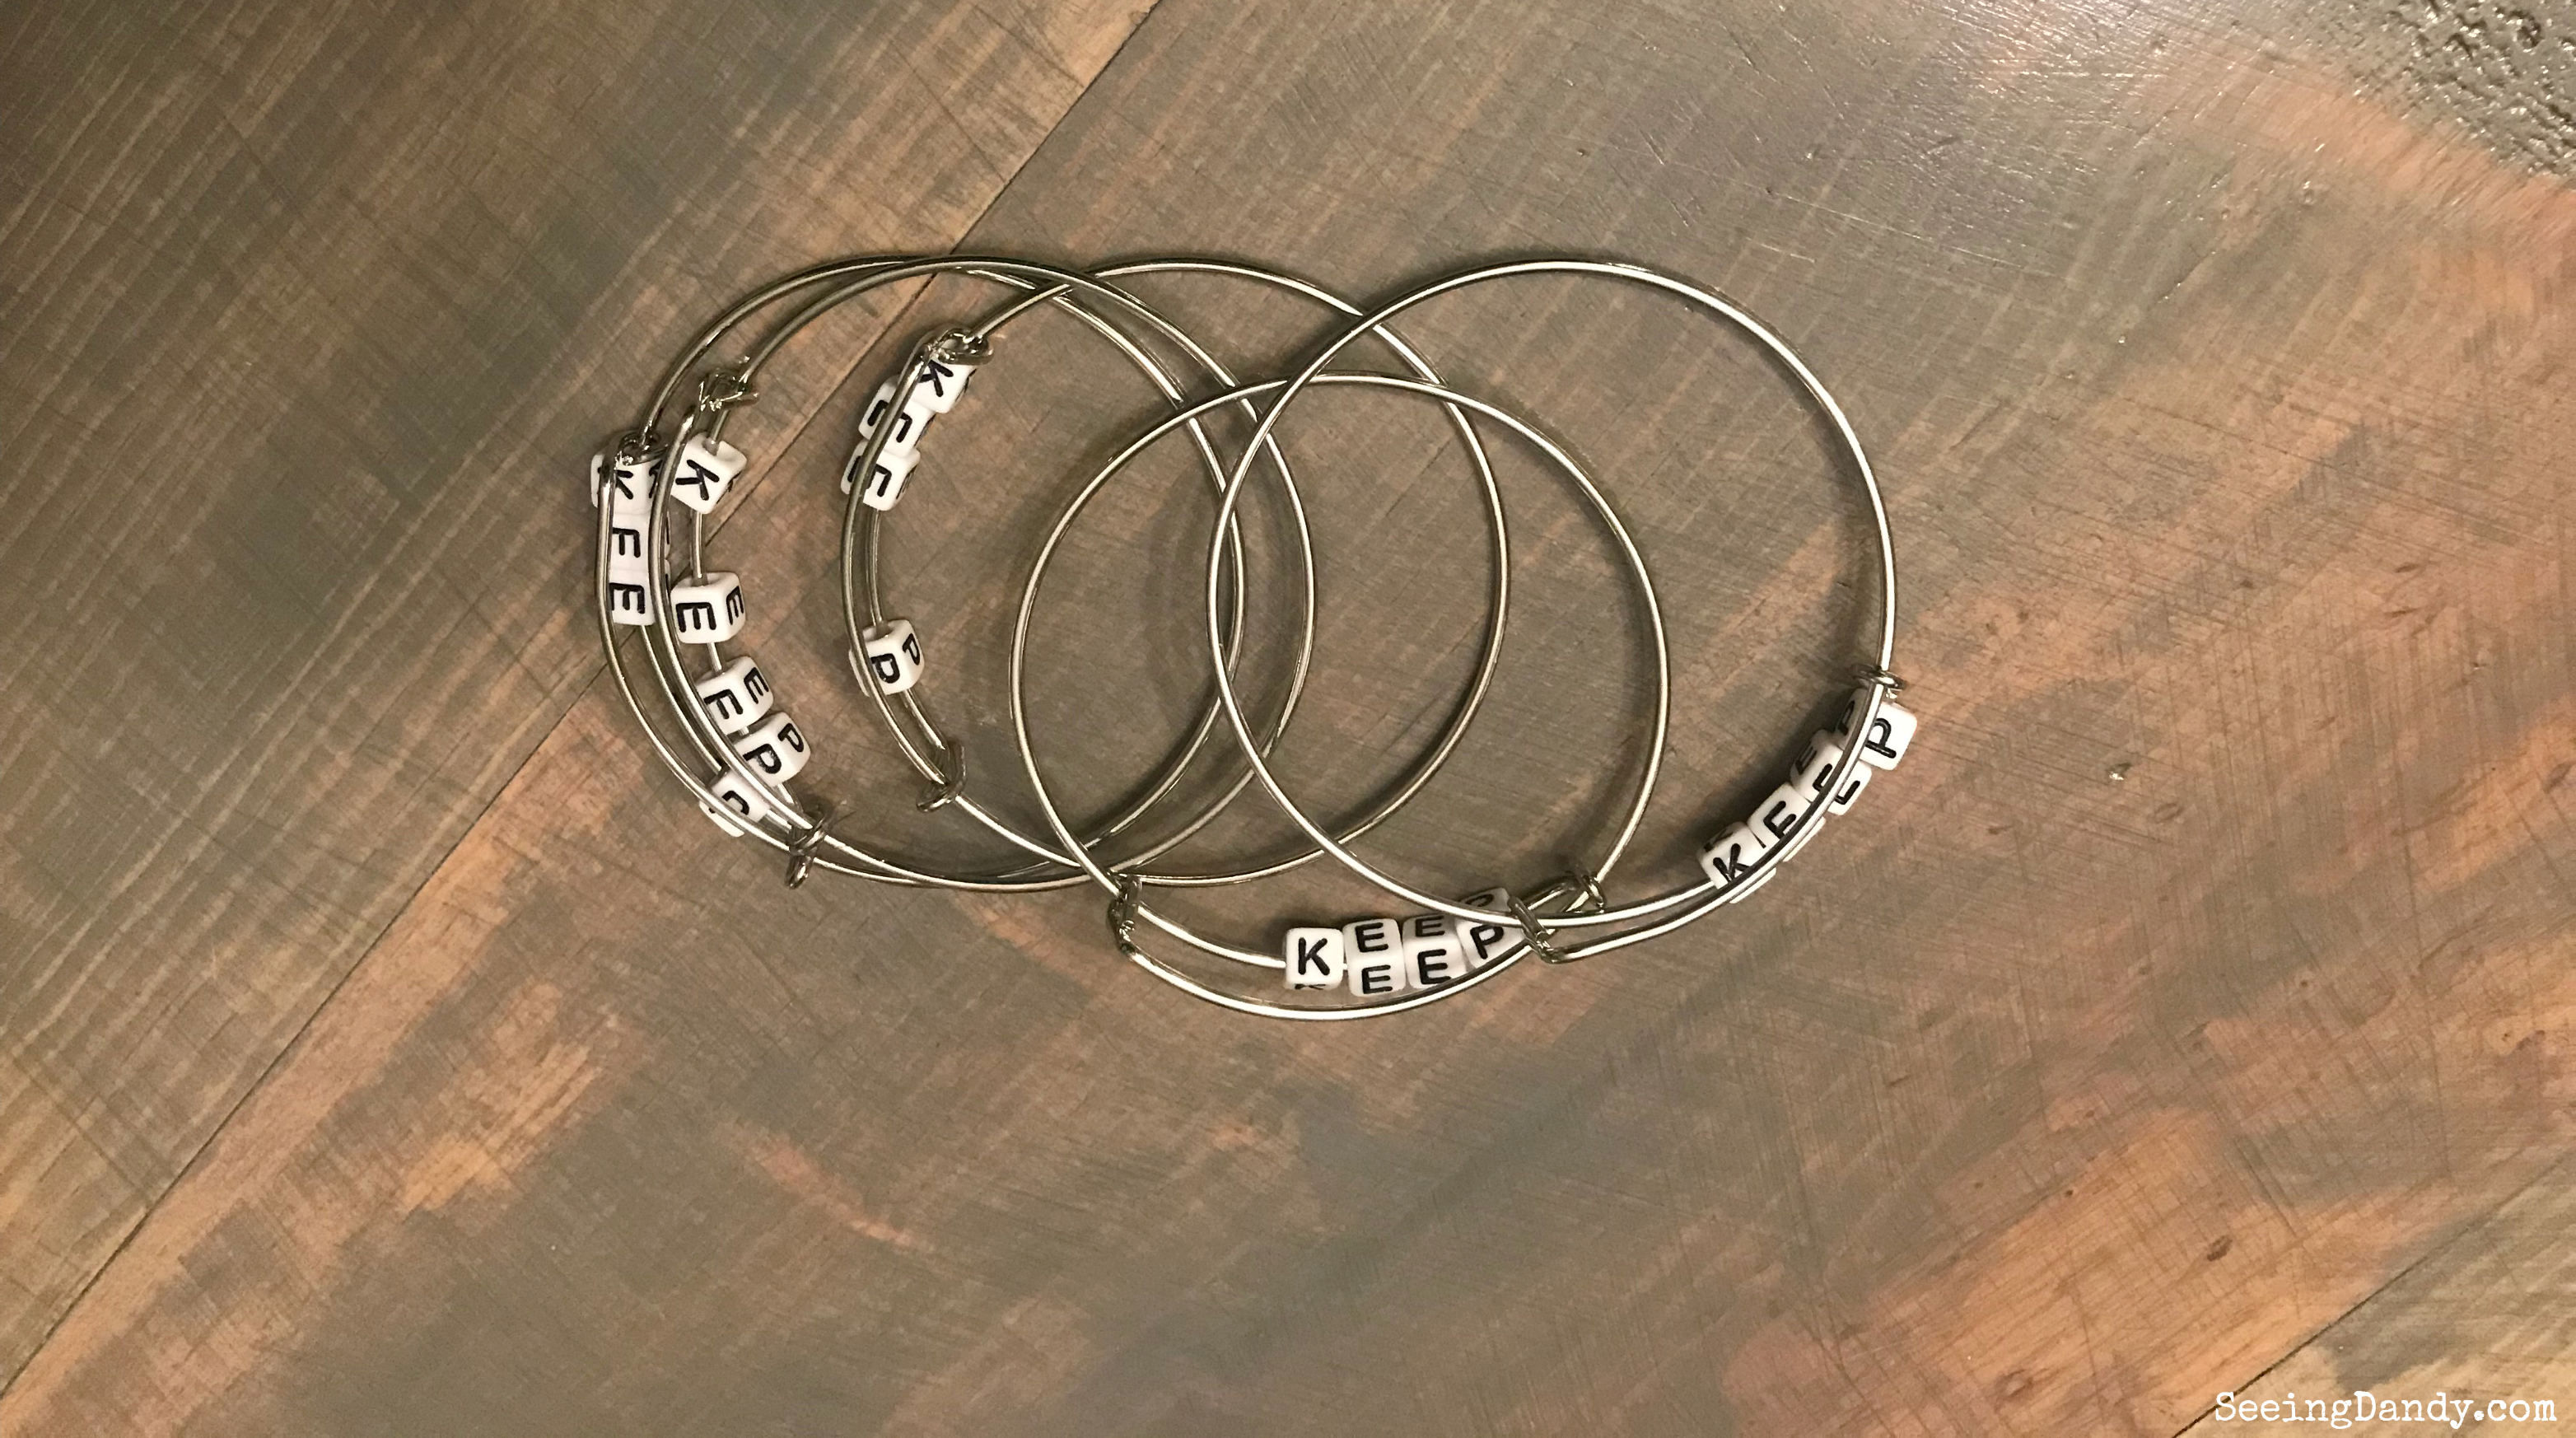 Church of Jesus Christ of Latter-Day Saints 2019 mutual theme bracelets.